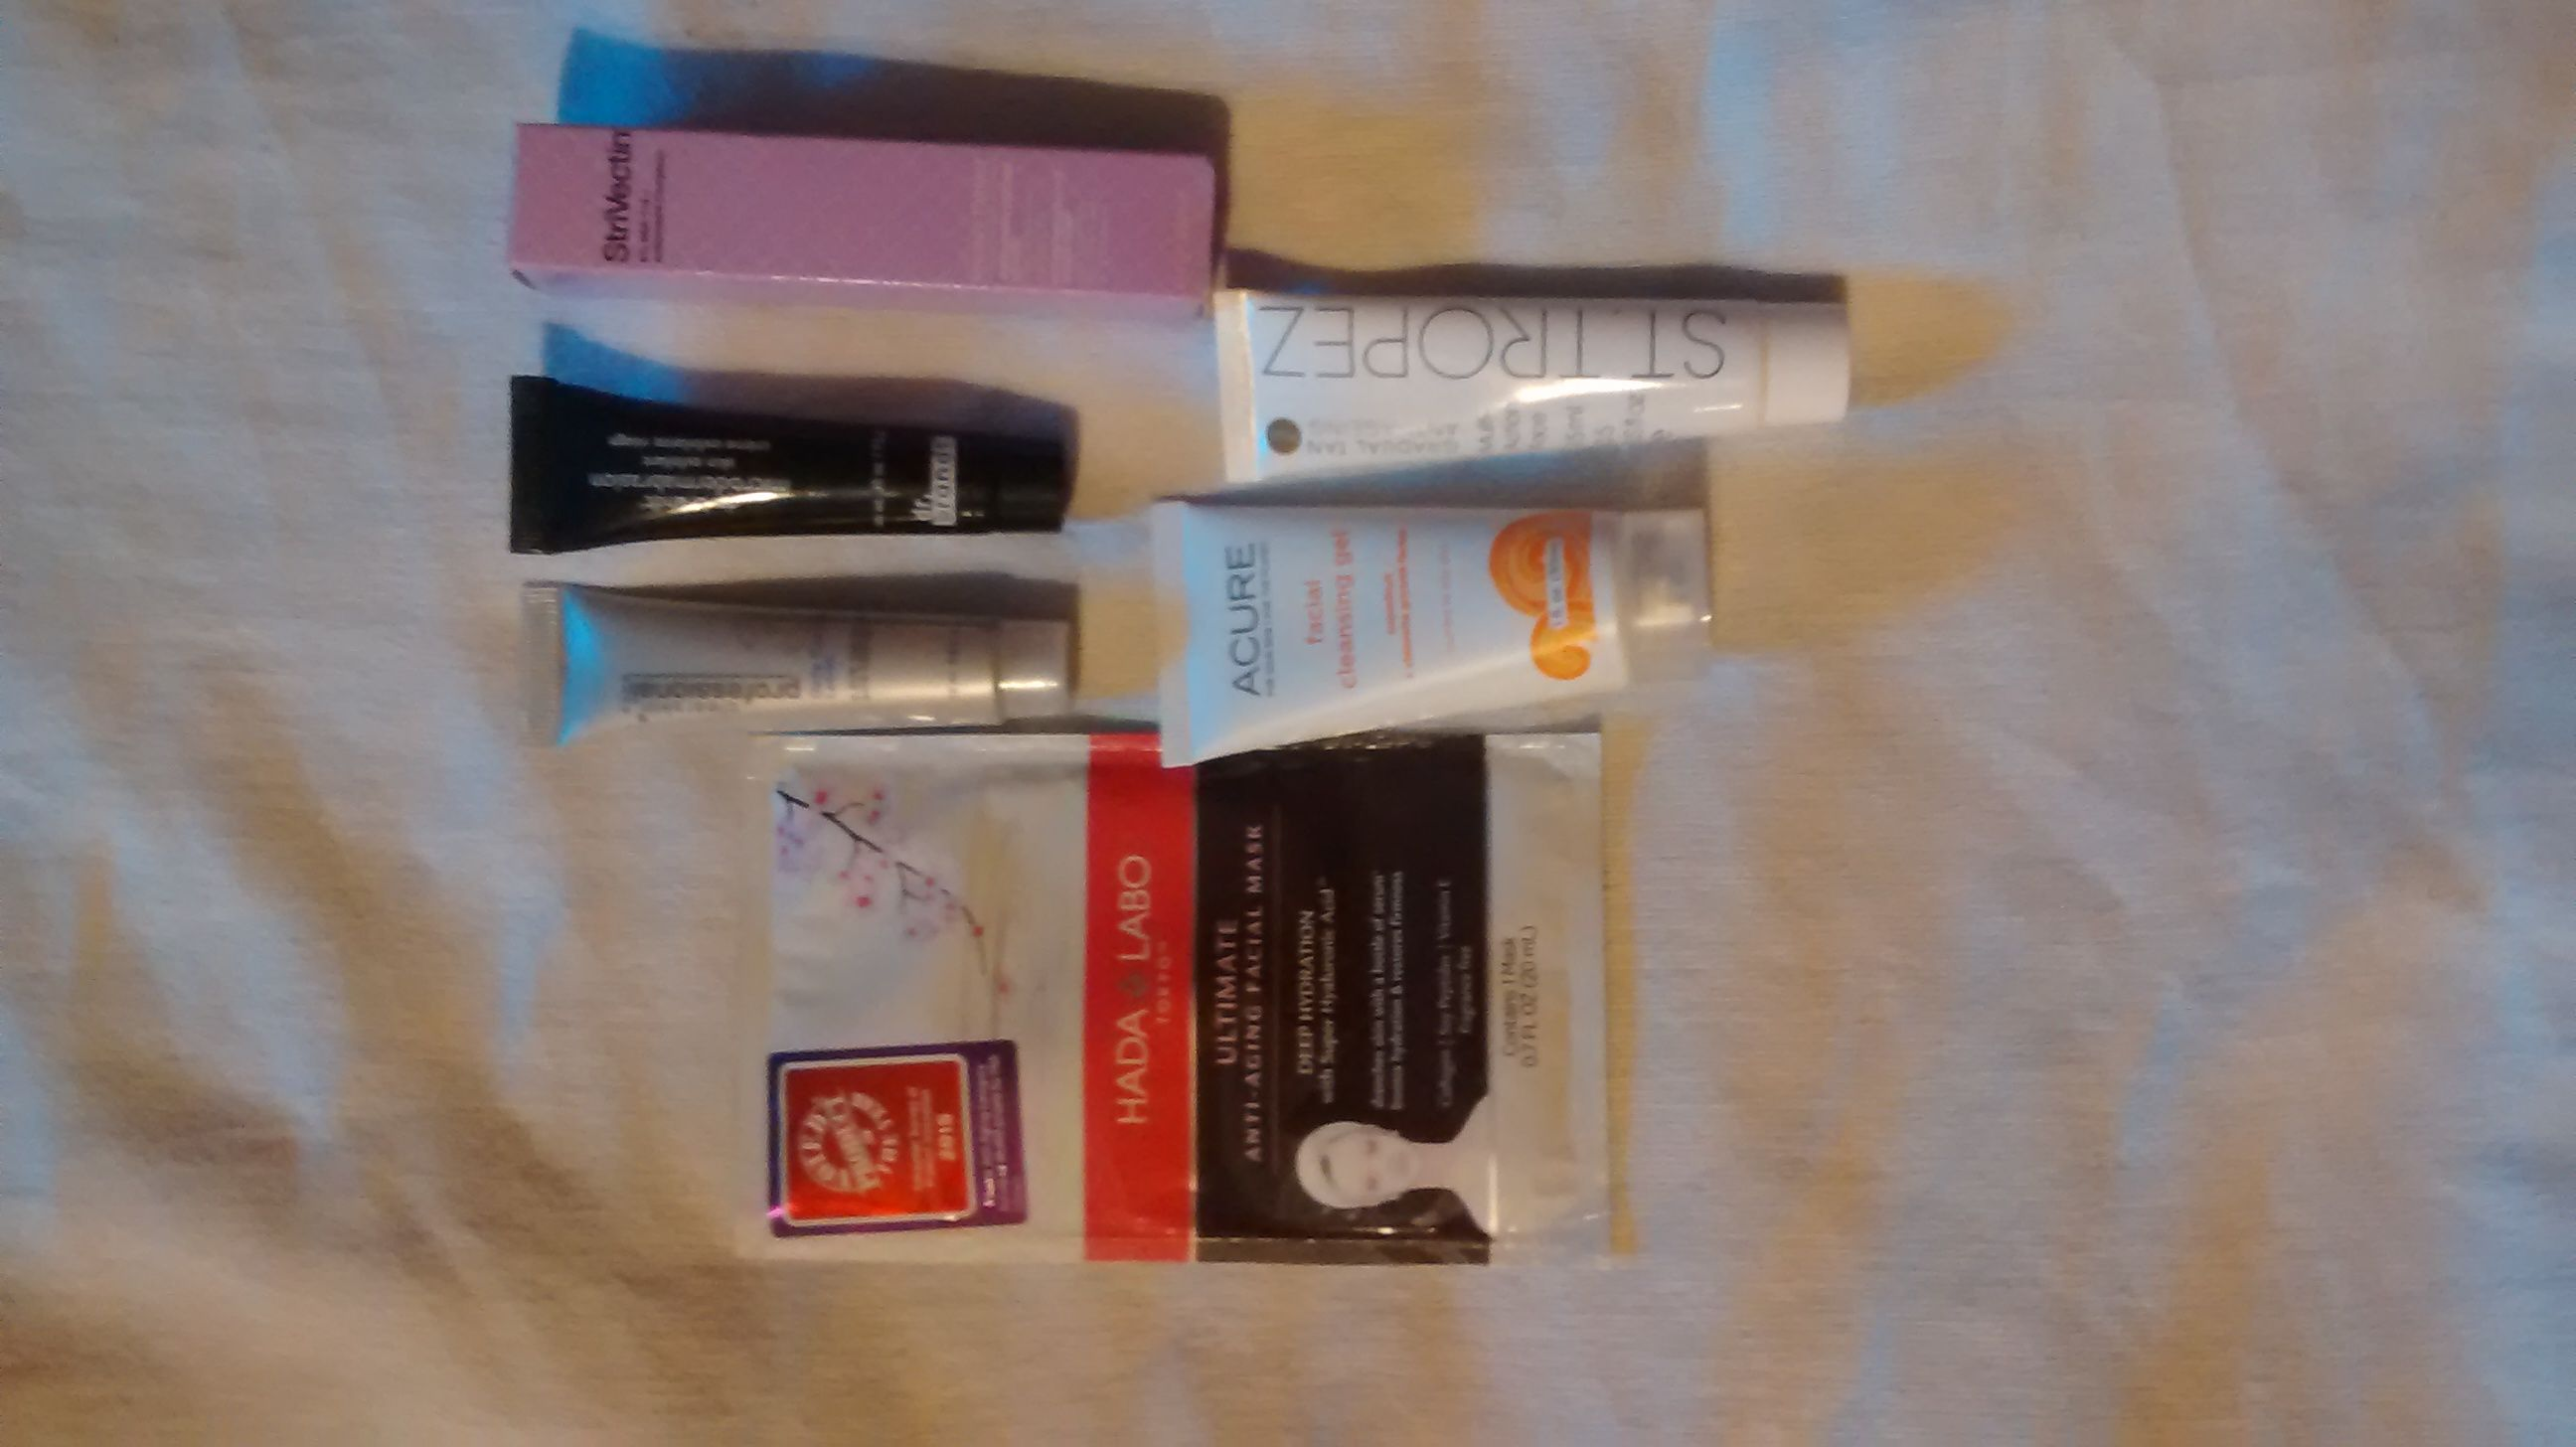 1)strivectin 2)Dr.Brandt microdermabrasion 3)face mask 4)st.Tropez gradual face Tanner 5)Avon clear skin lotion 6)Acure facial cleanser